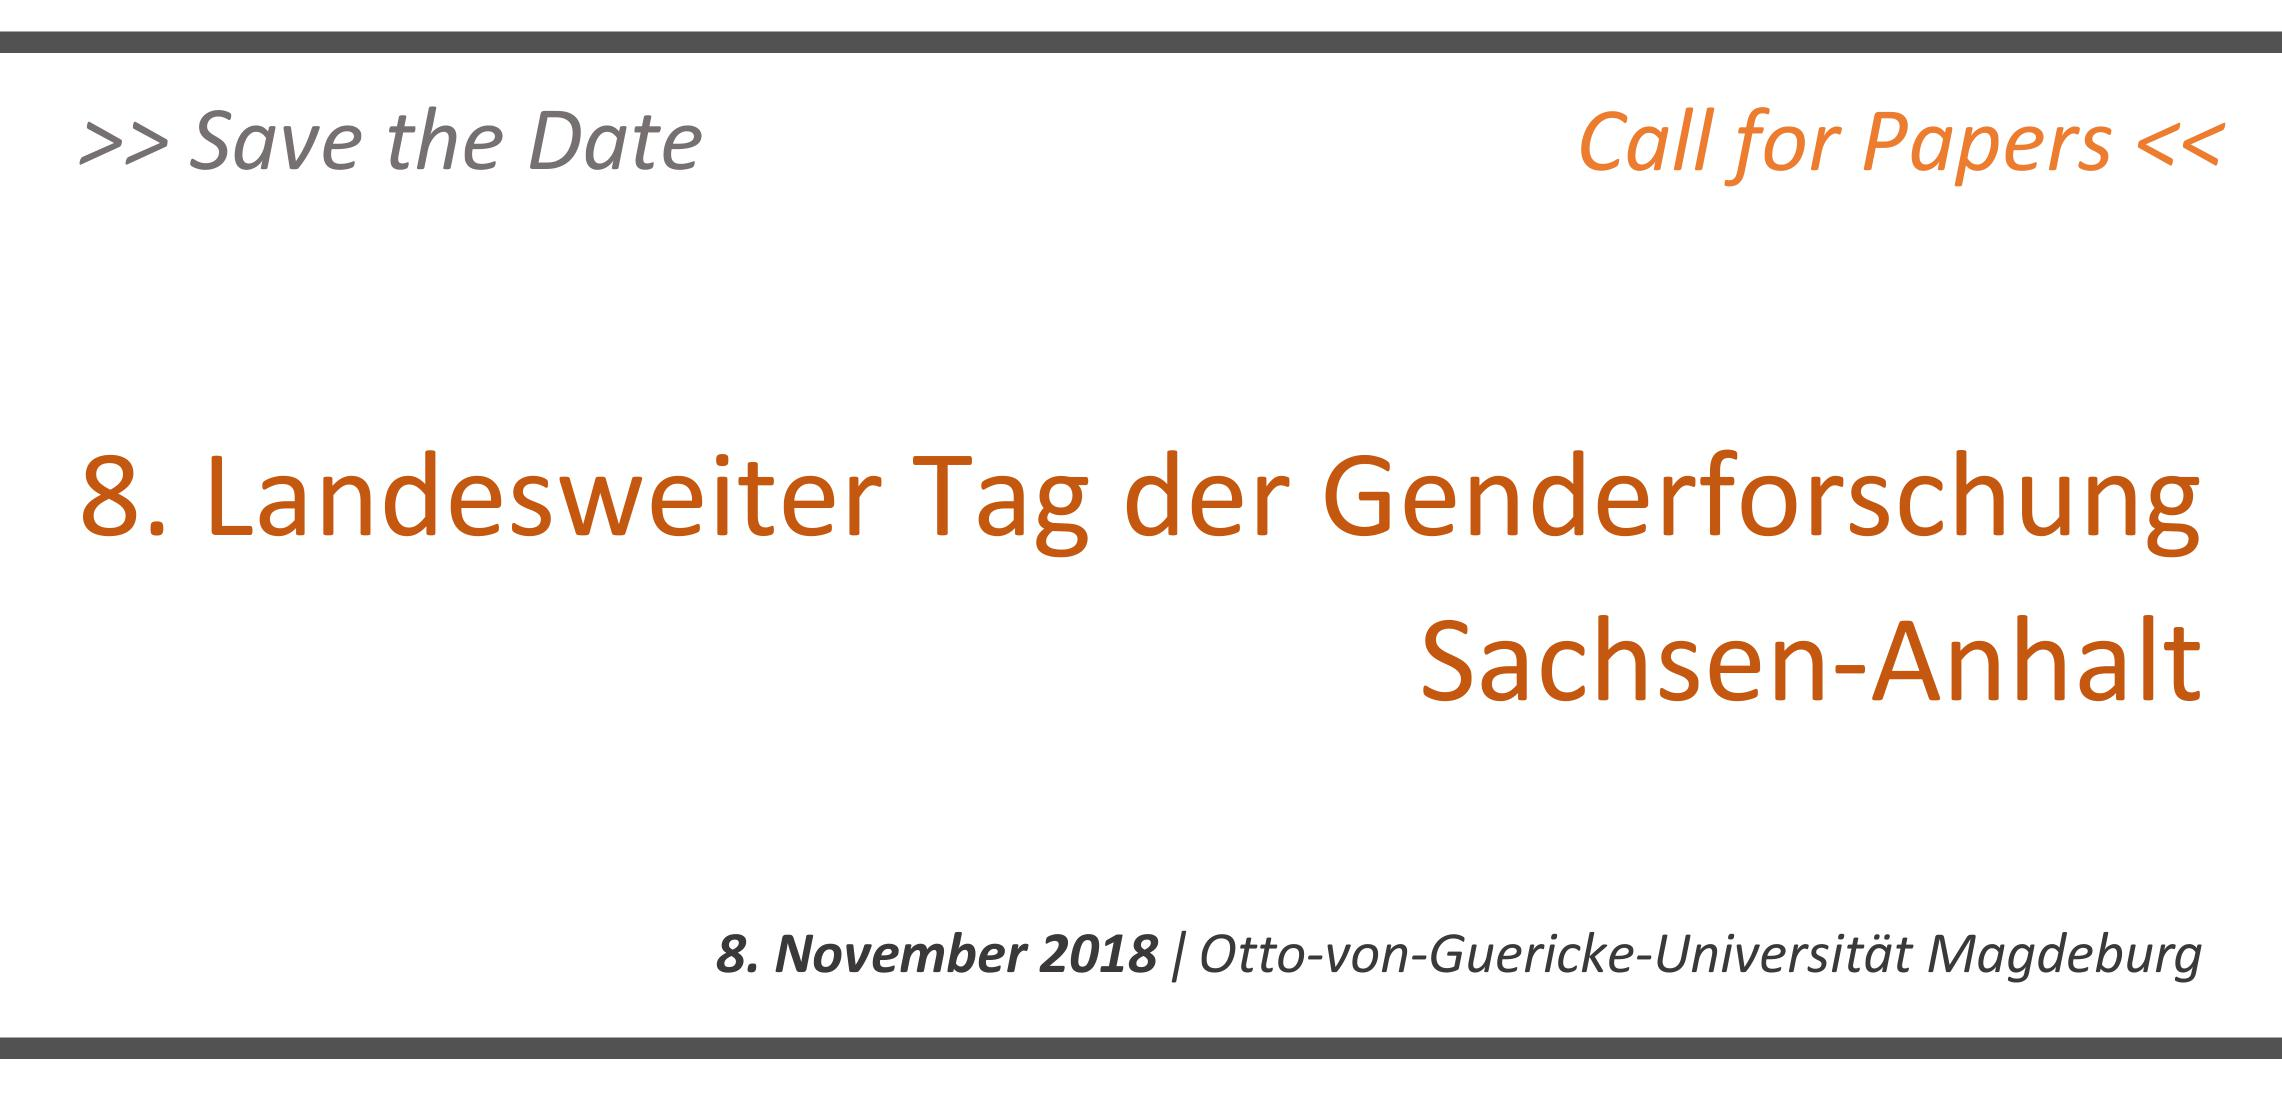 Call for Papers_Landesweiter Tag der Genderforschung